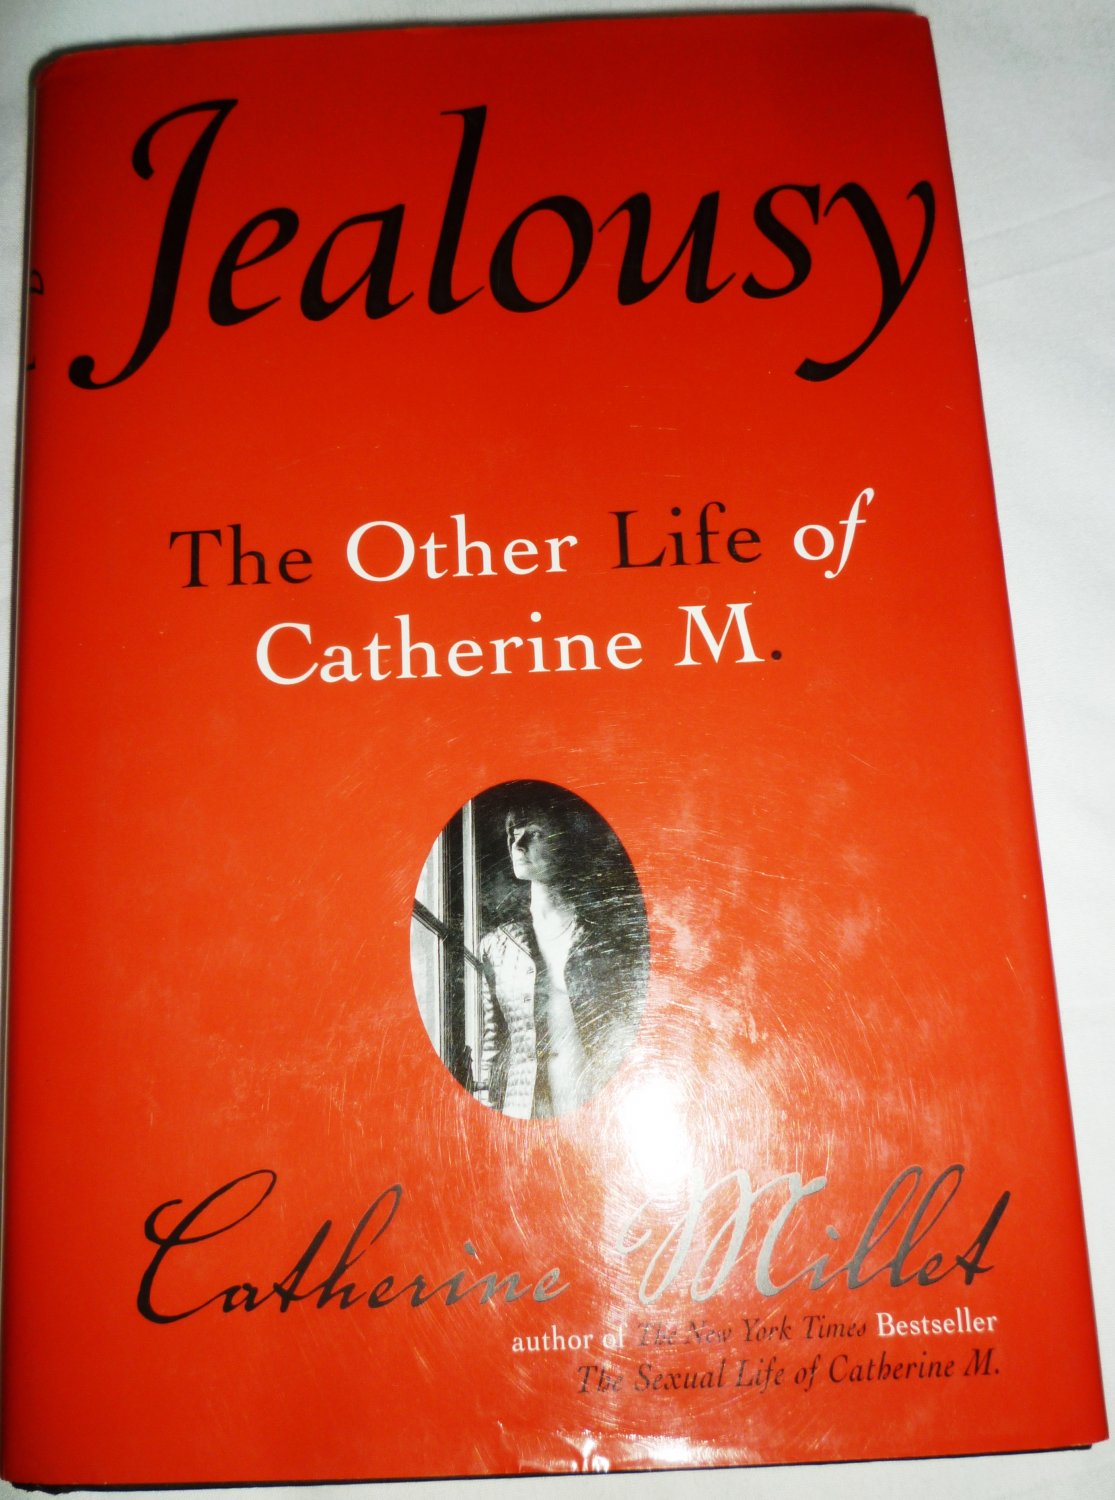 JEALOUSY THE OTHER LIFE OF CATHERINE M. BY CATHERINE MILLET